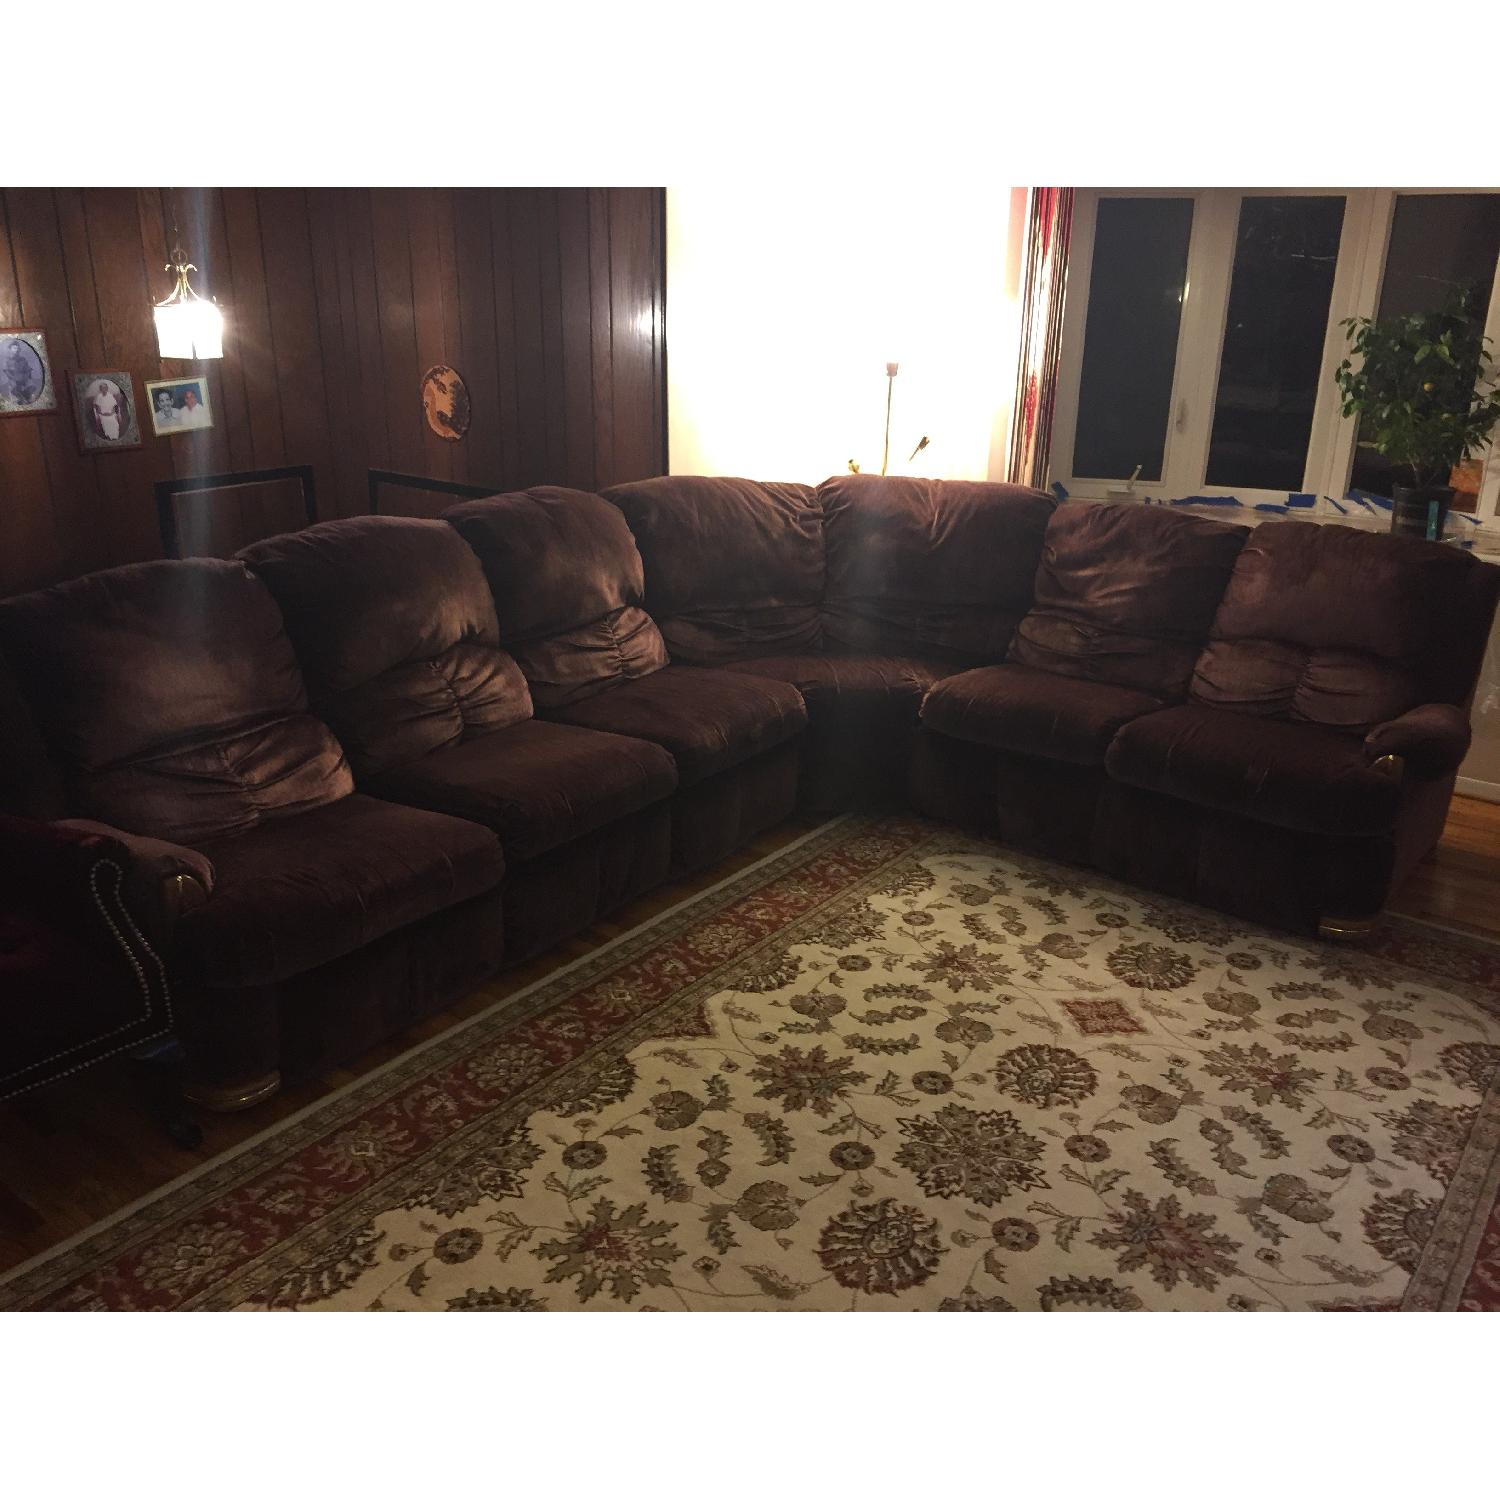 Burgundy Suede Sectional Sofa - image-1